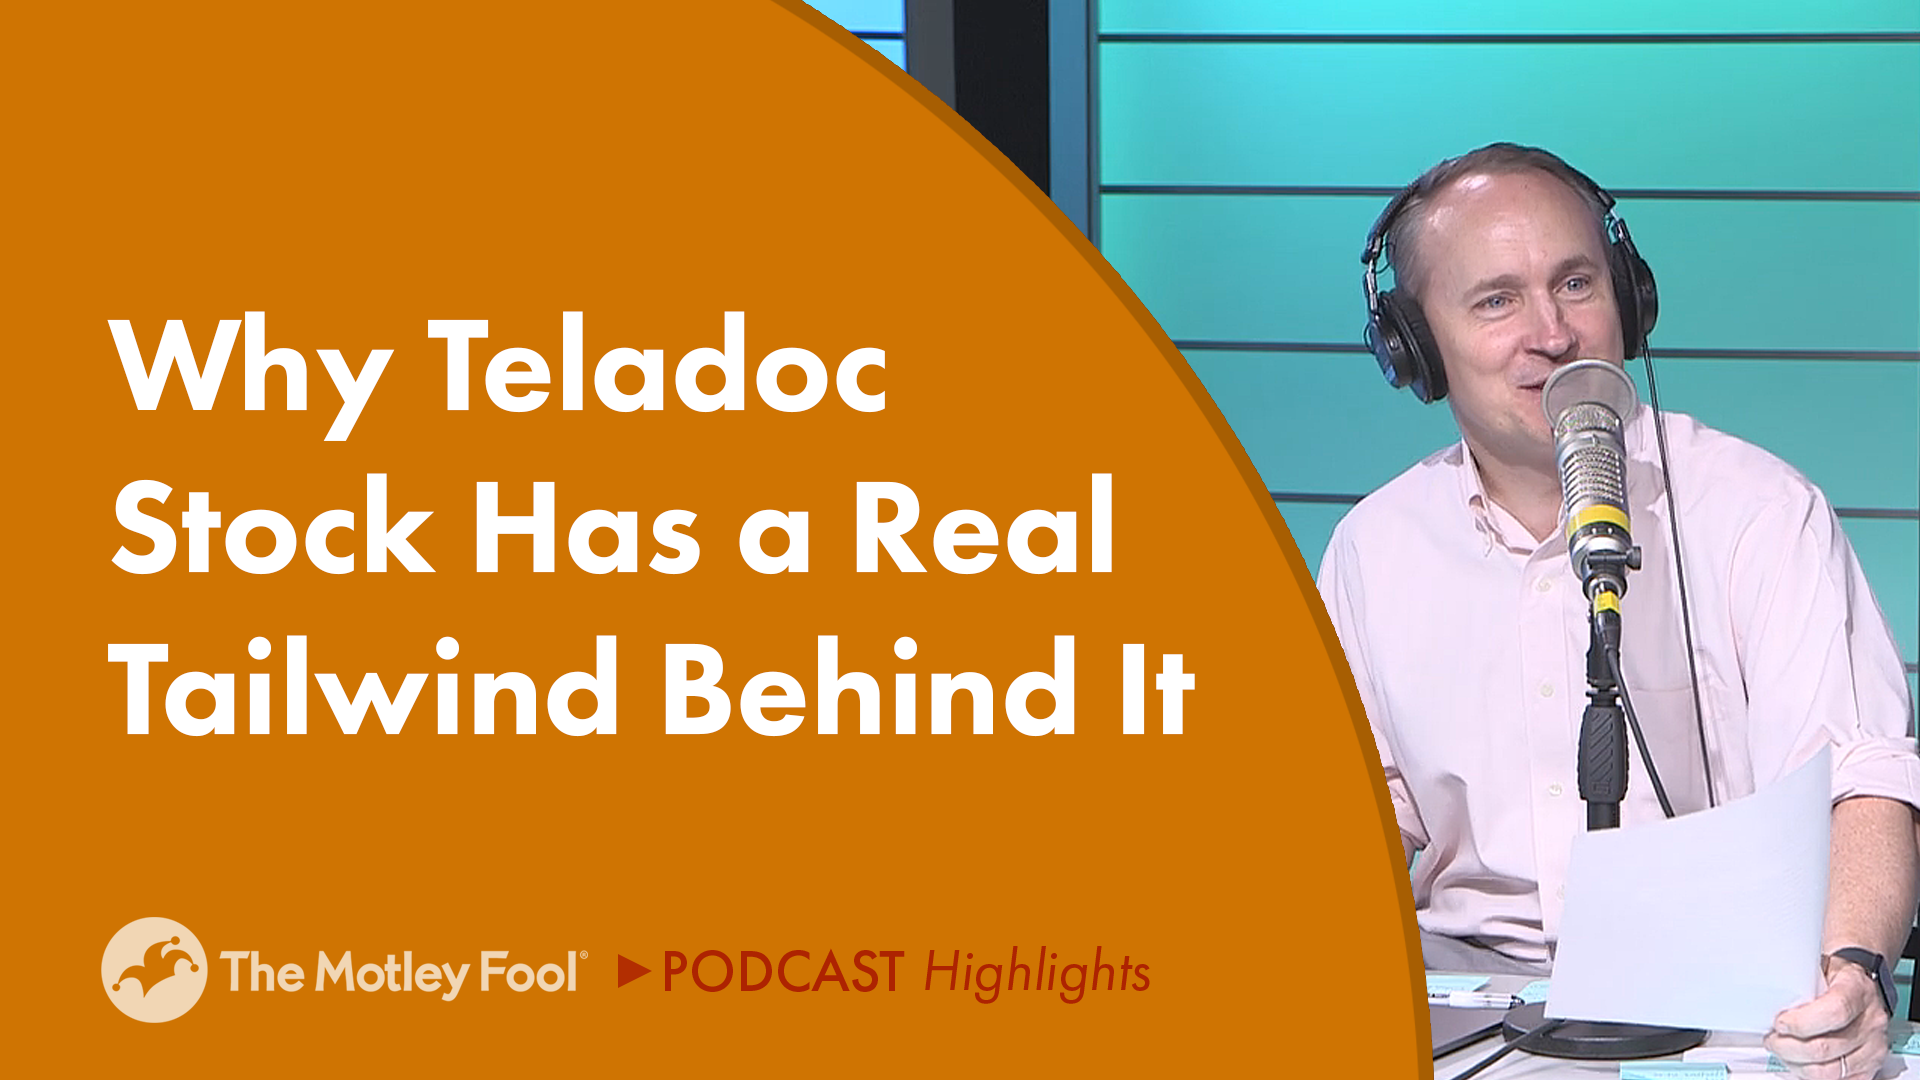 Why Teladoc Stock Has a Real Tailwind Behind It